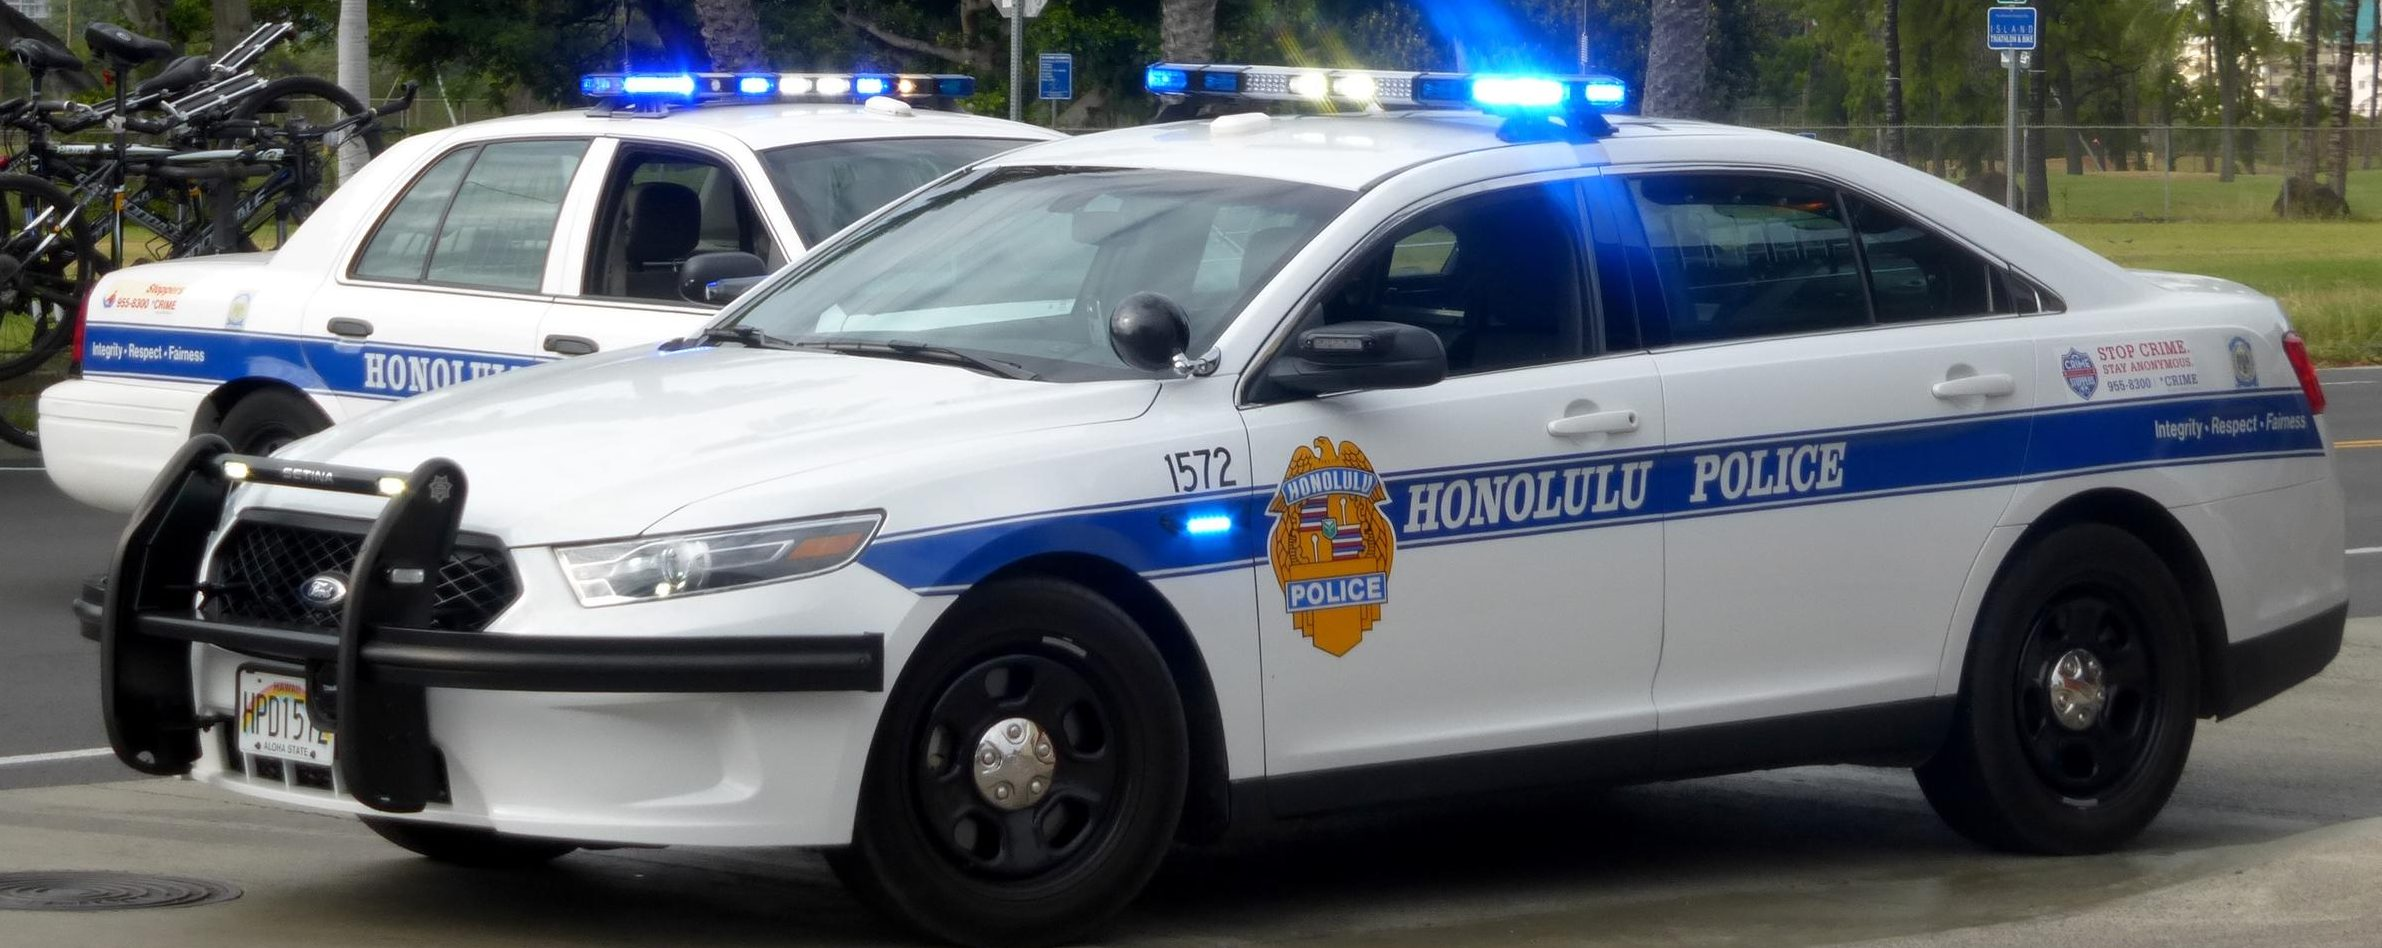 Hawaii criminal and arrest records